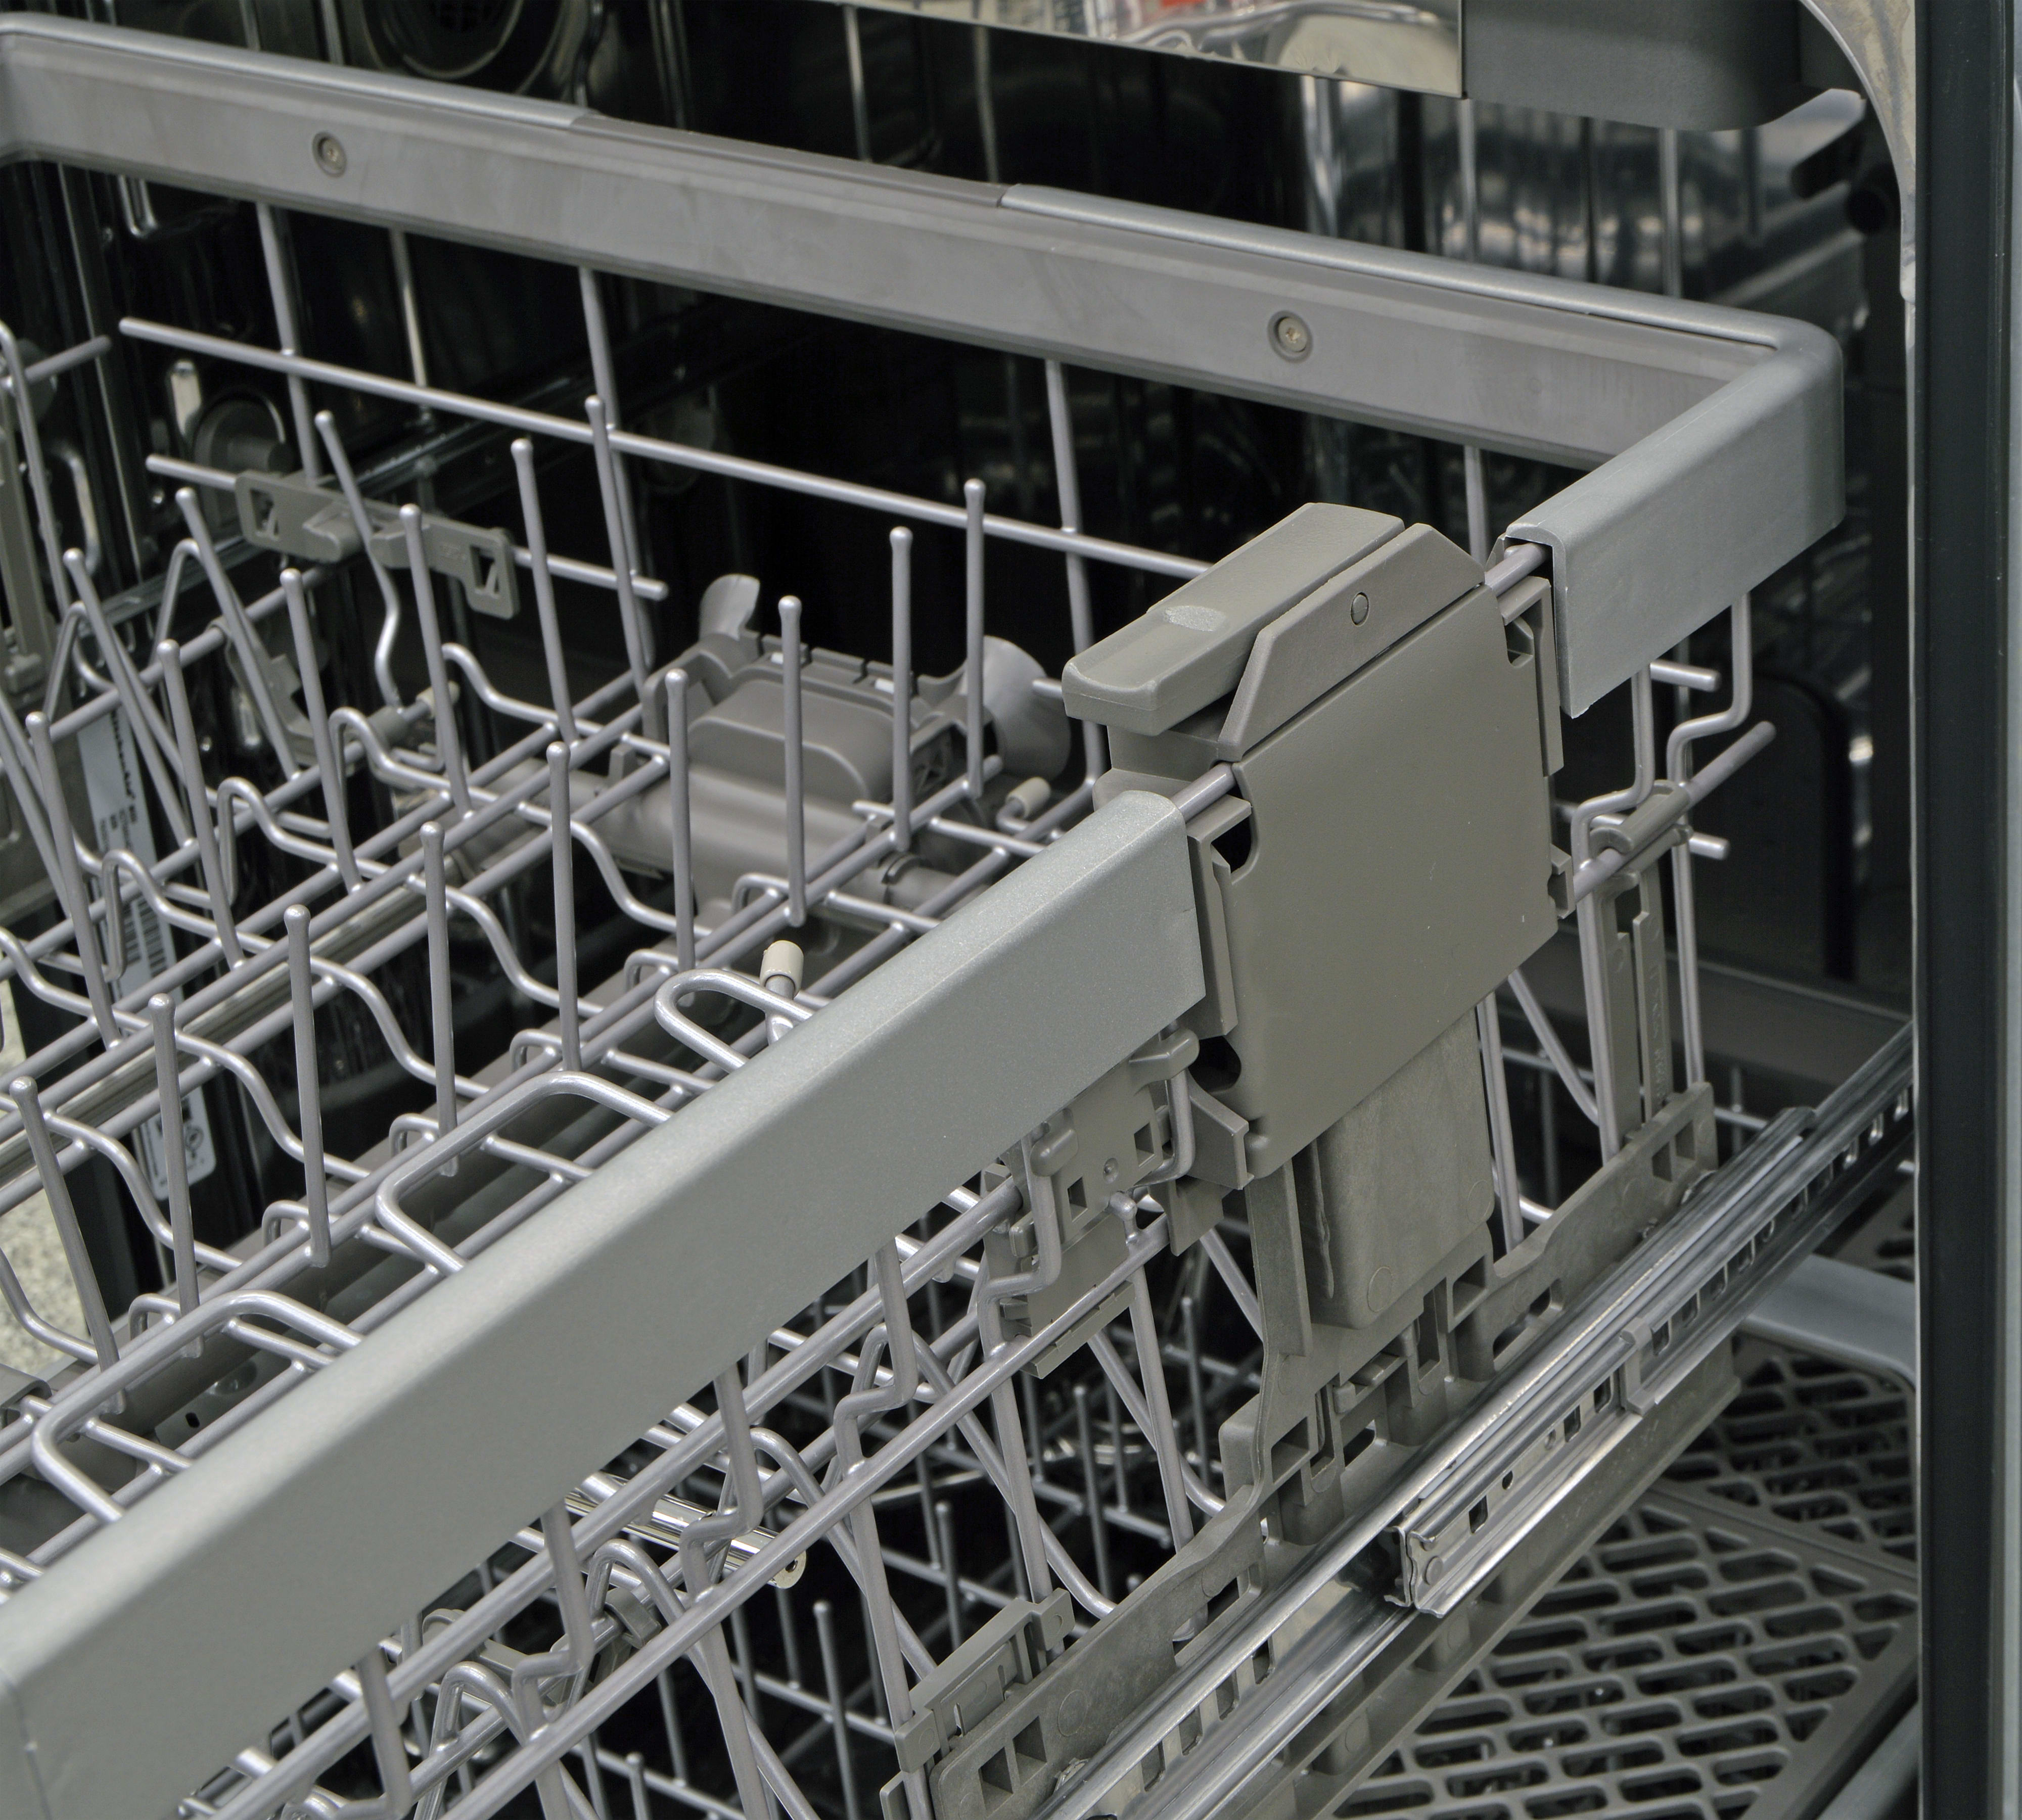 Height adjustment switch on the upper rack